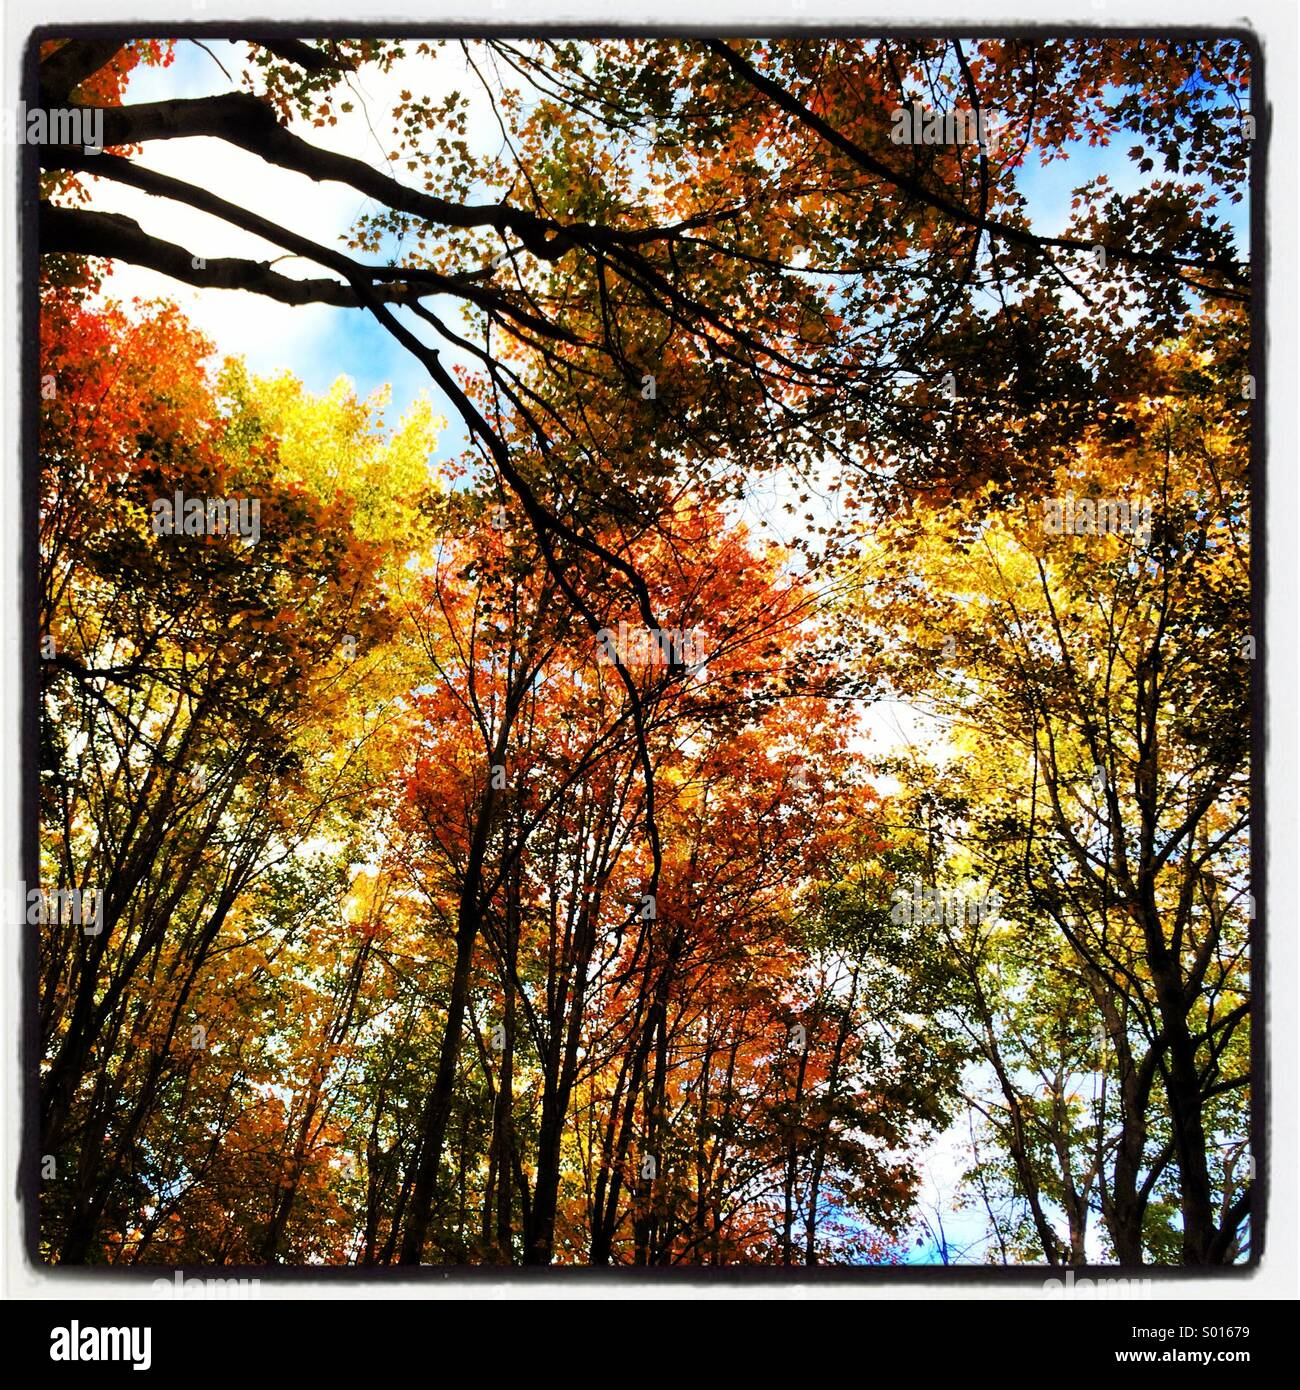 Fall colors in Maine - Stock Image